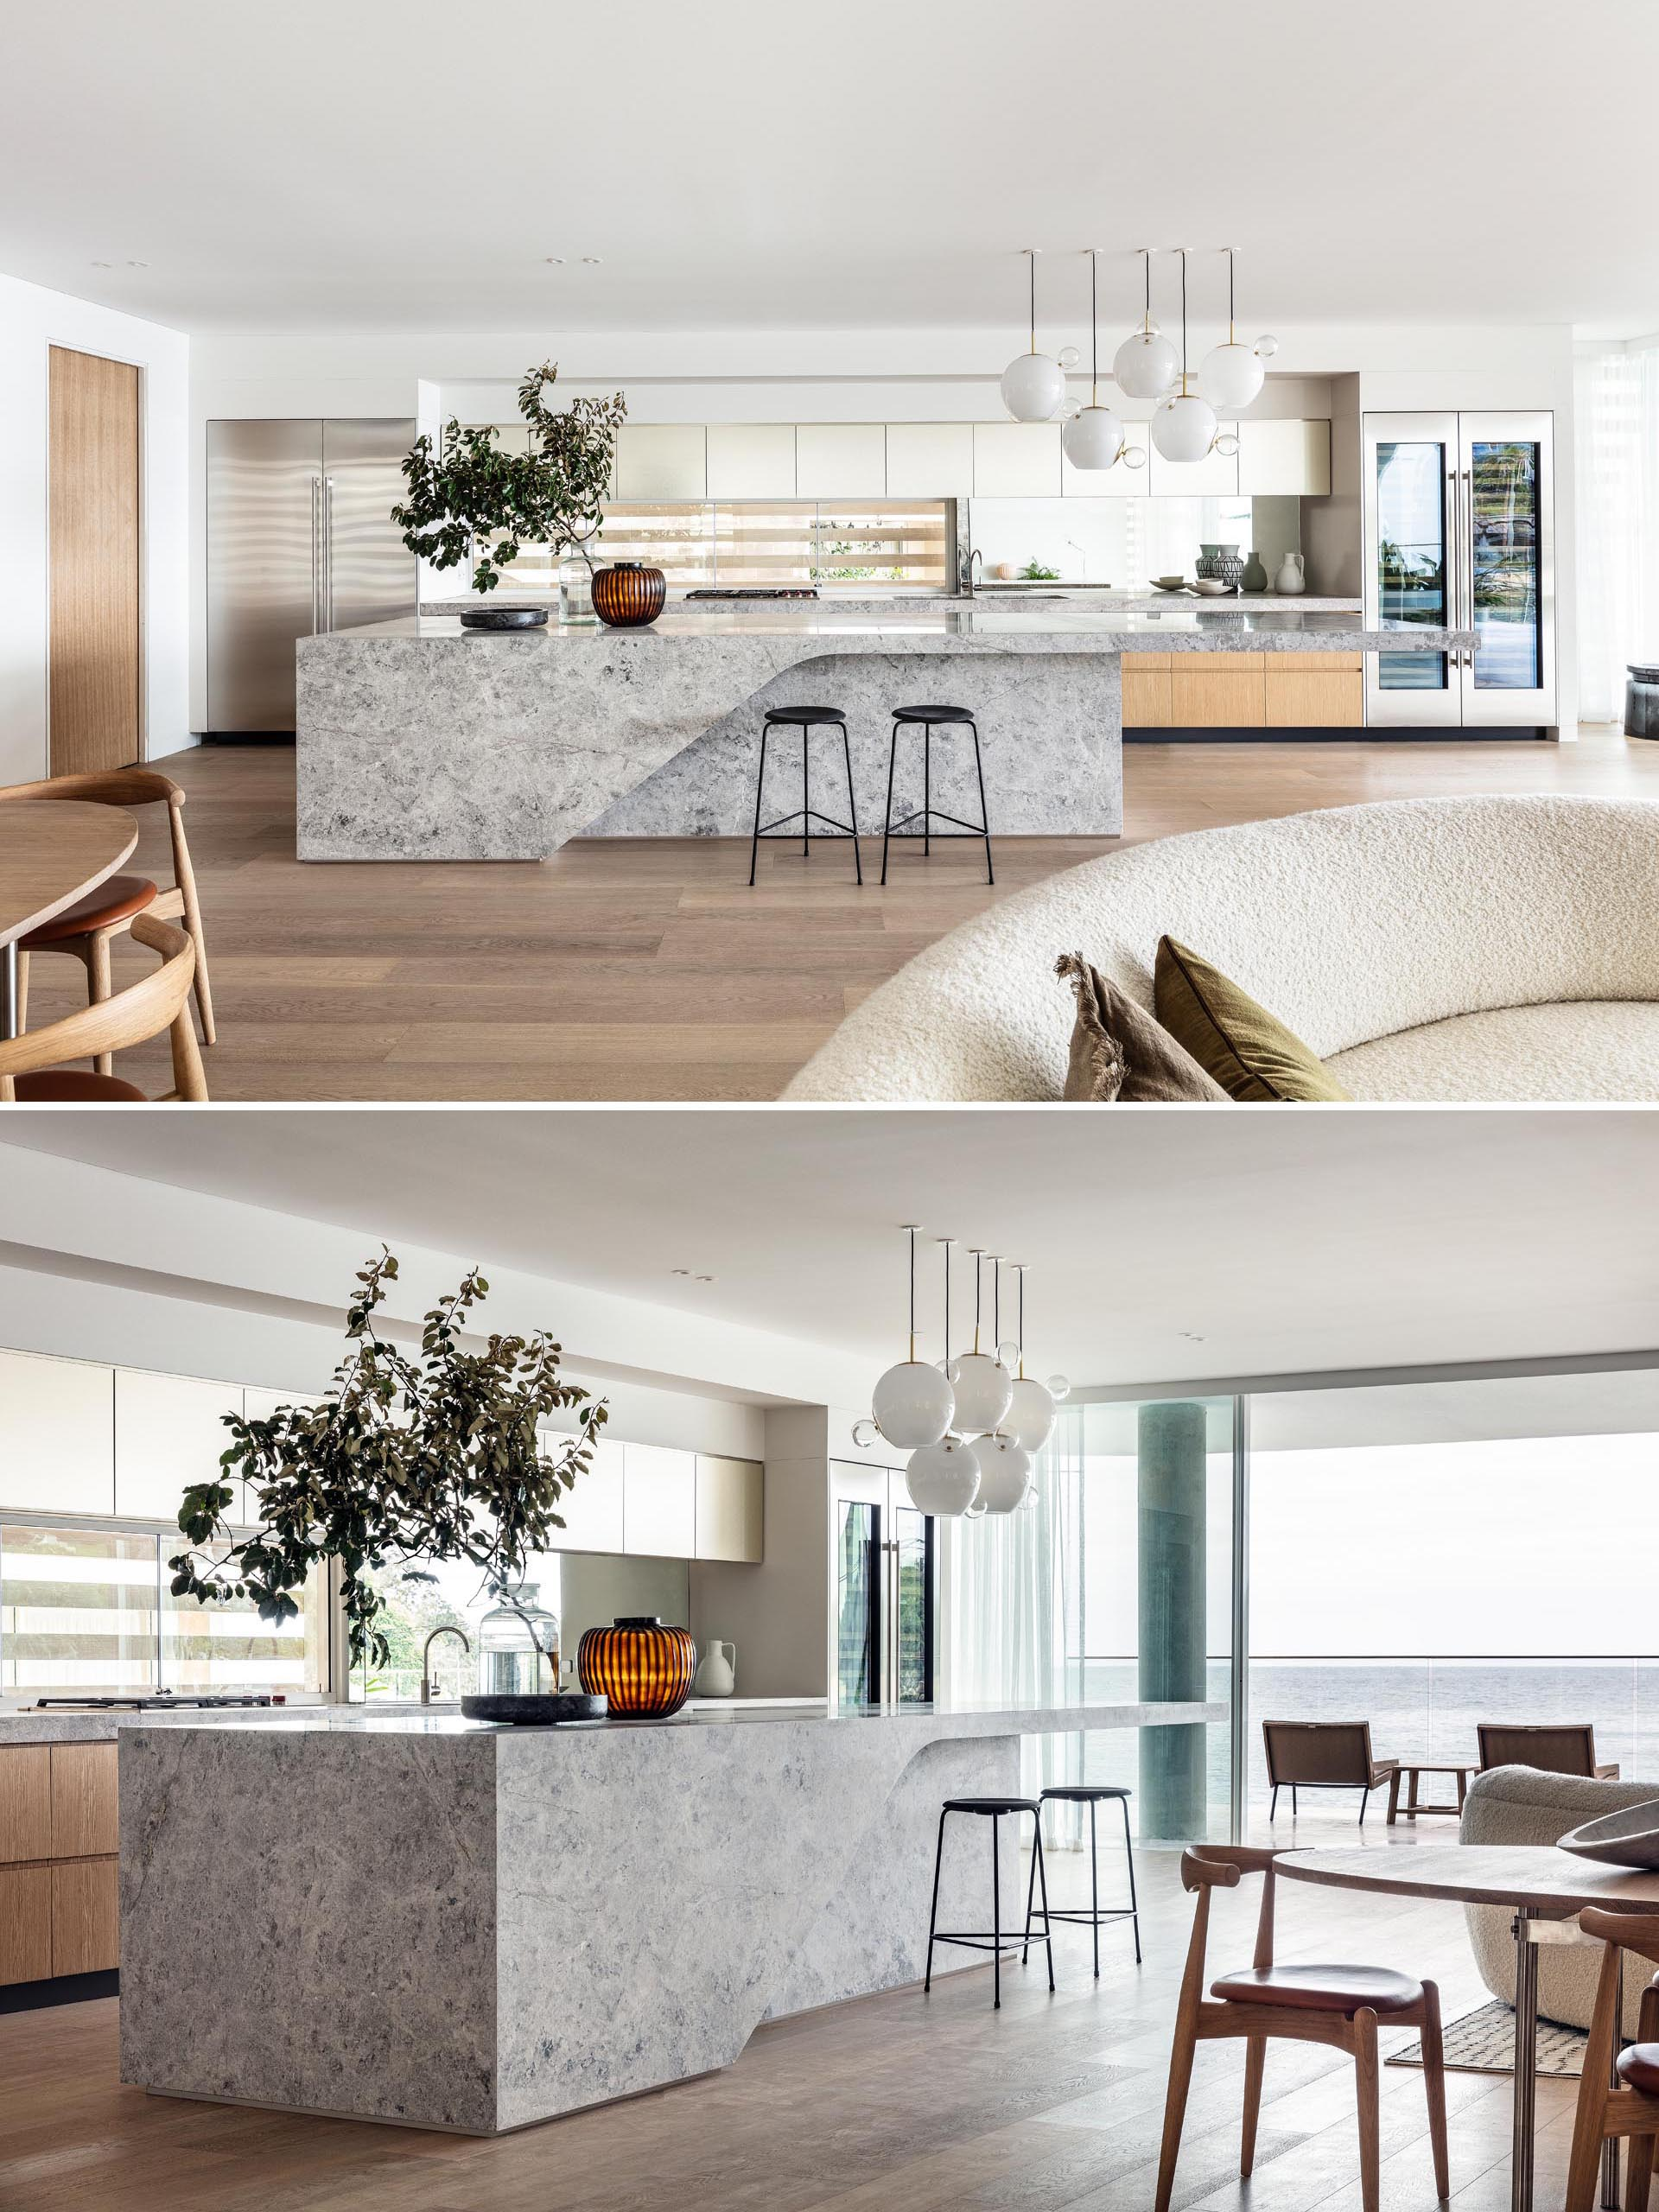 This modern house has a large natural stone kitchen island with pendant lights that hang above the end of the island that's cantilevered.